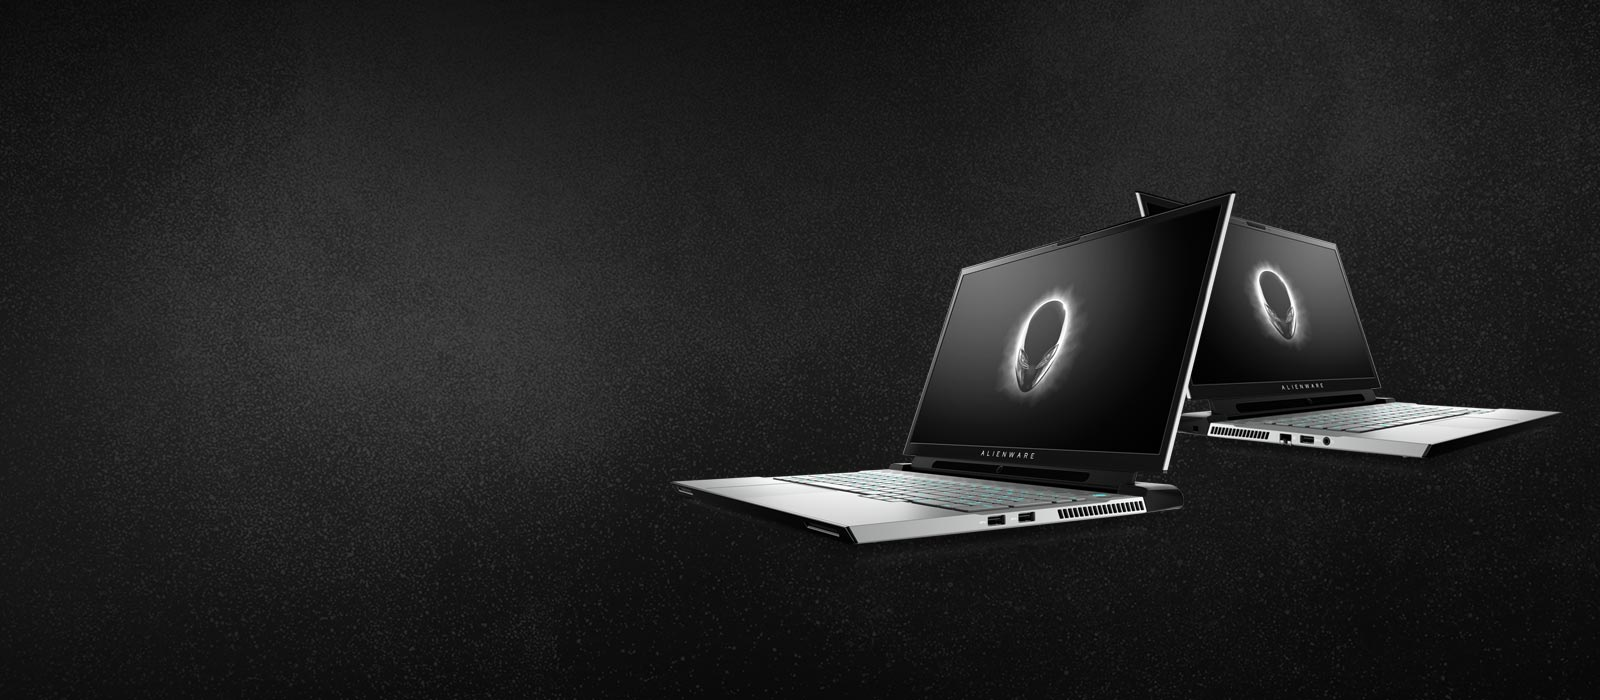 Dell-Alienware-Gaming-deal-q2w10-1600x700.jpg